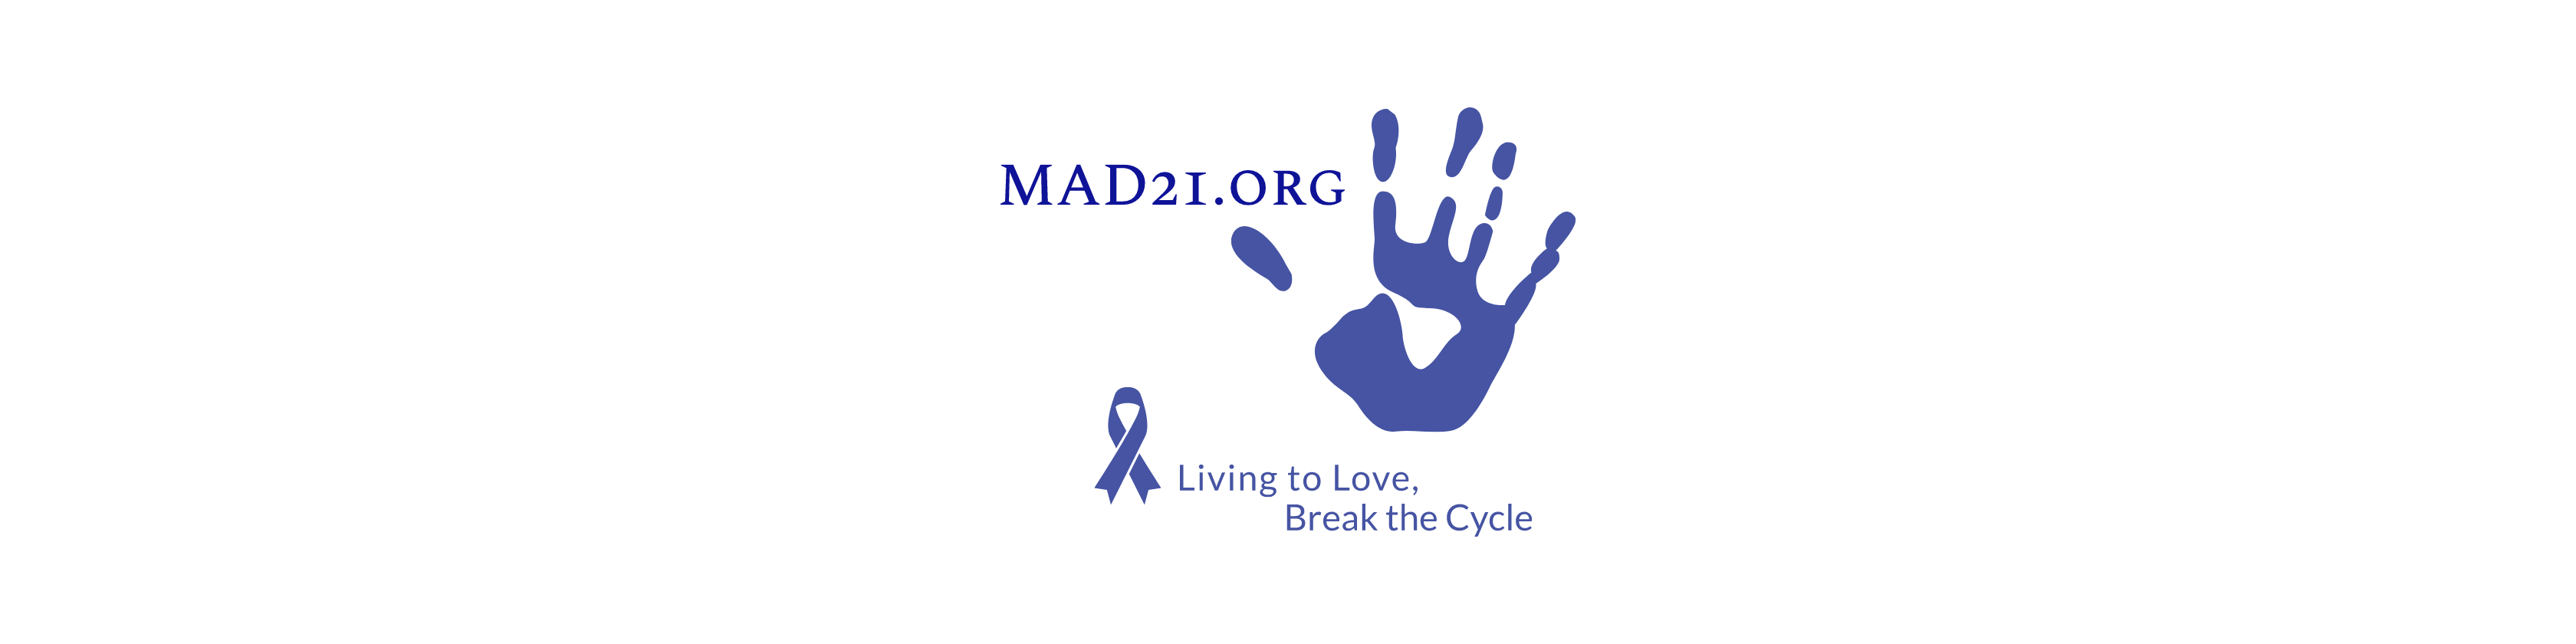 MAD21.org Announces Launch of Anti-Domestic Violence Campaign, Living to Love